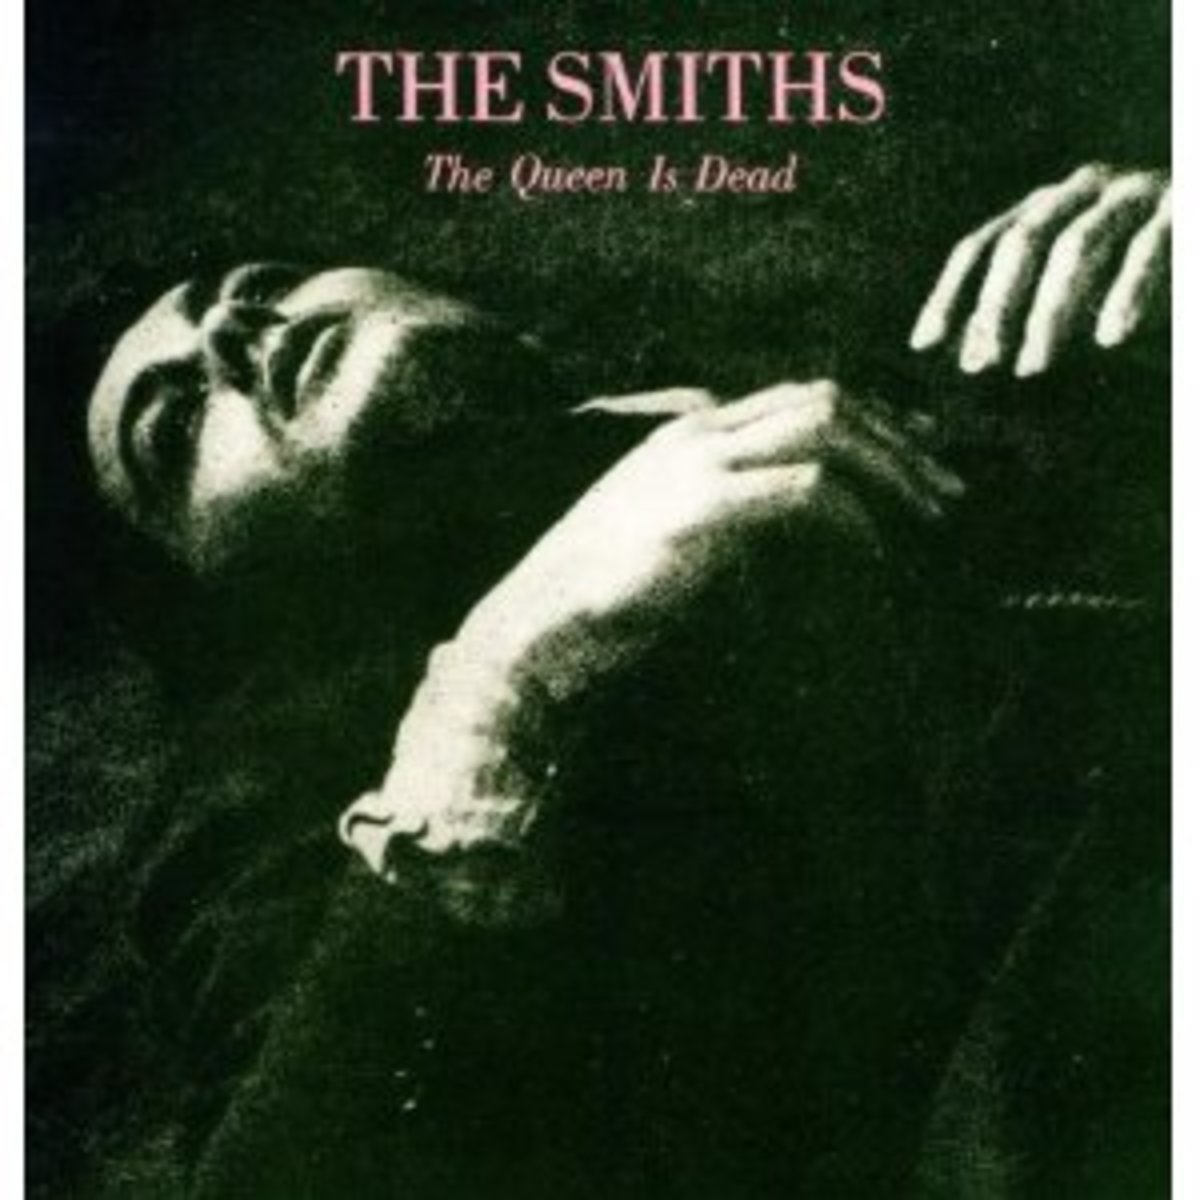 The most recent documentary in XFM London's excellent XFM 25 series focuses on The Smiths' seminal 1986 album The Queen Is Dead.